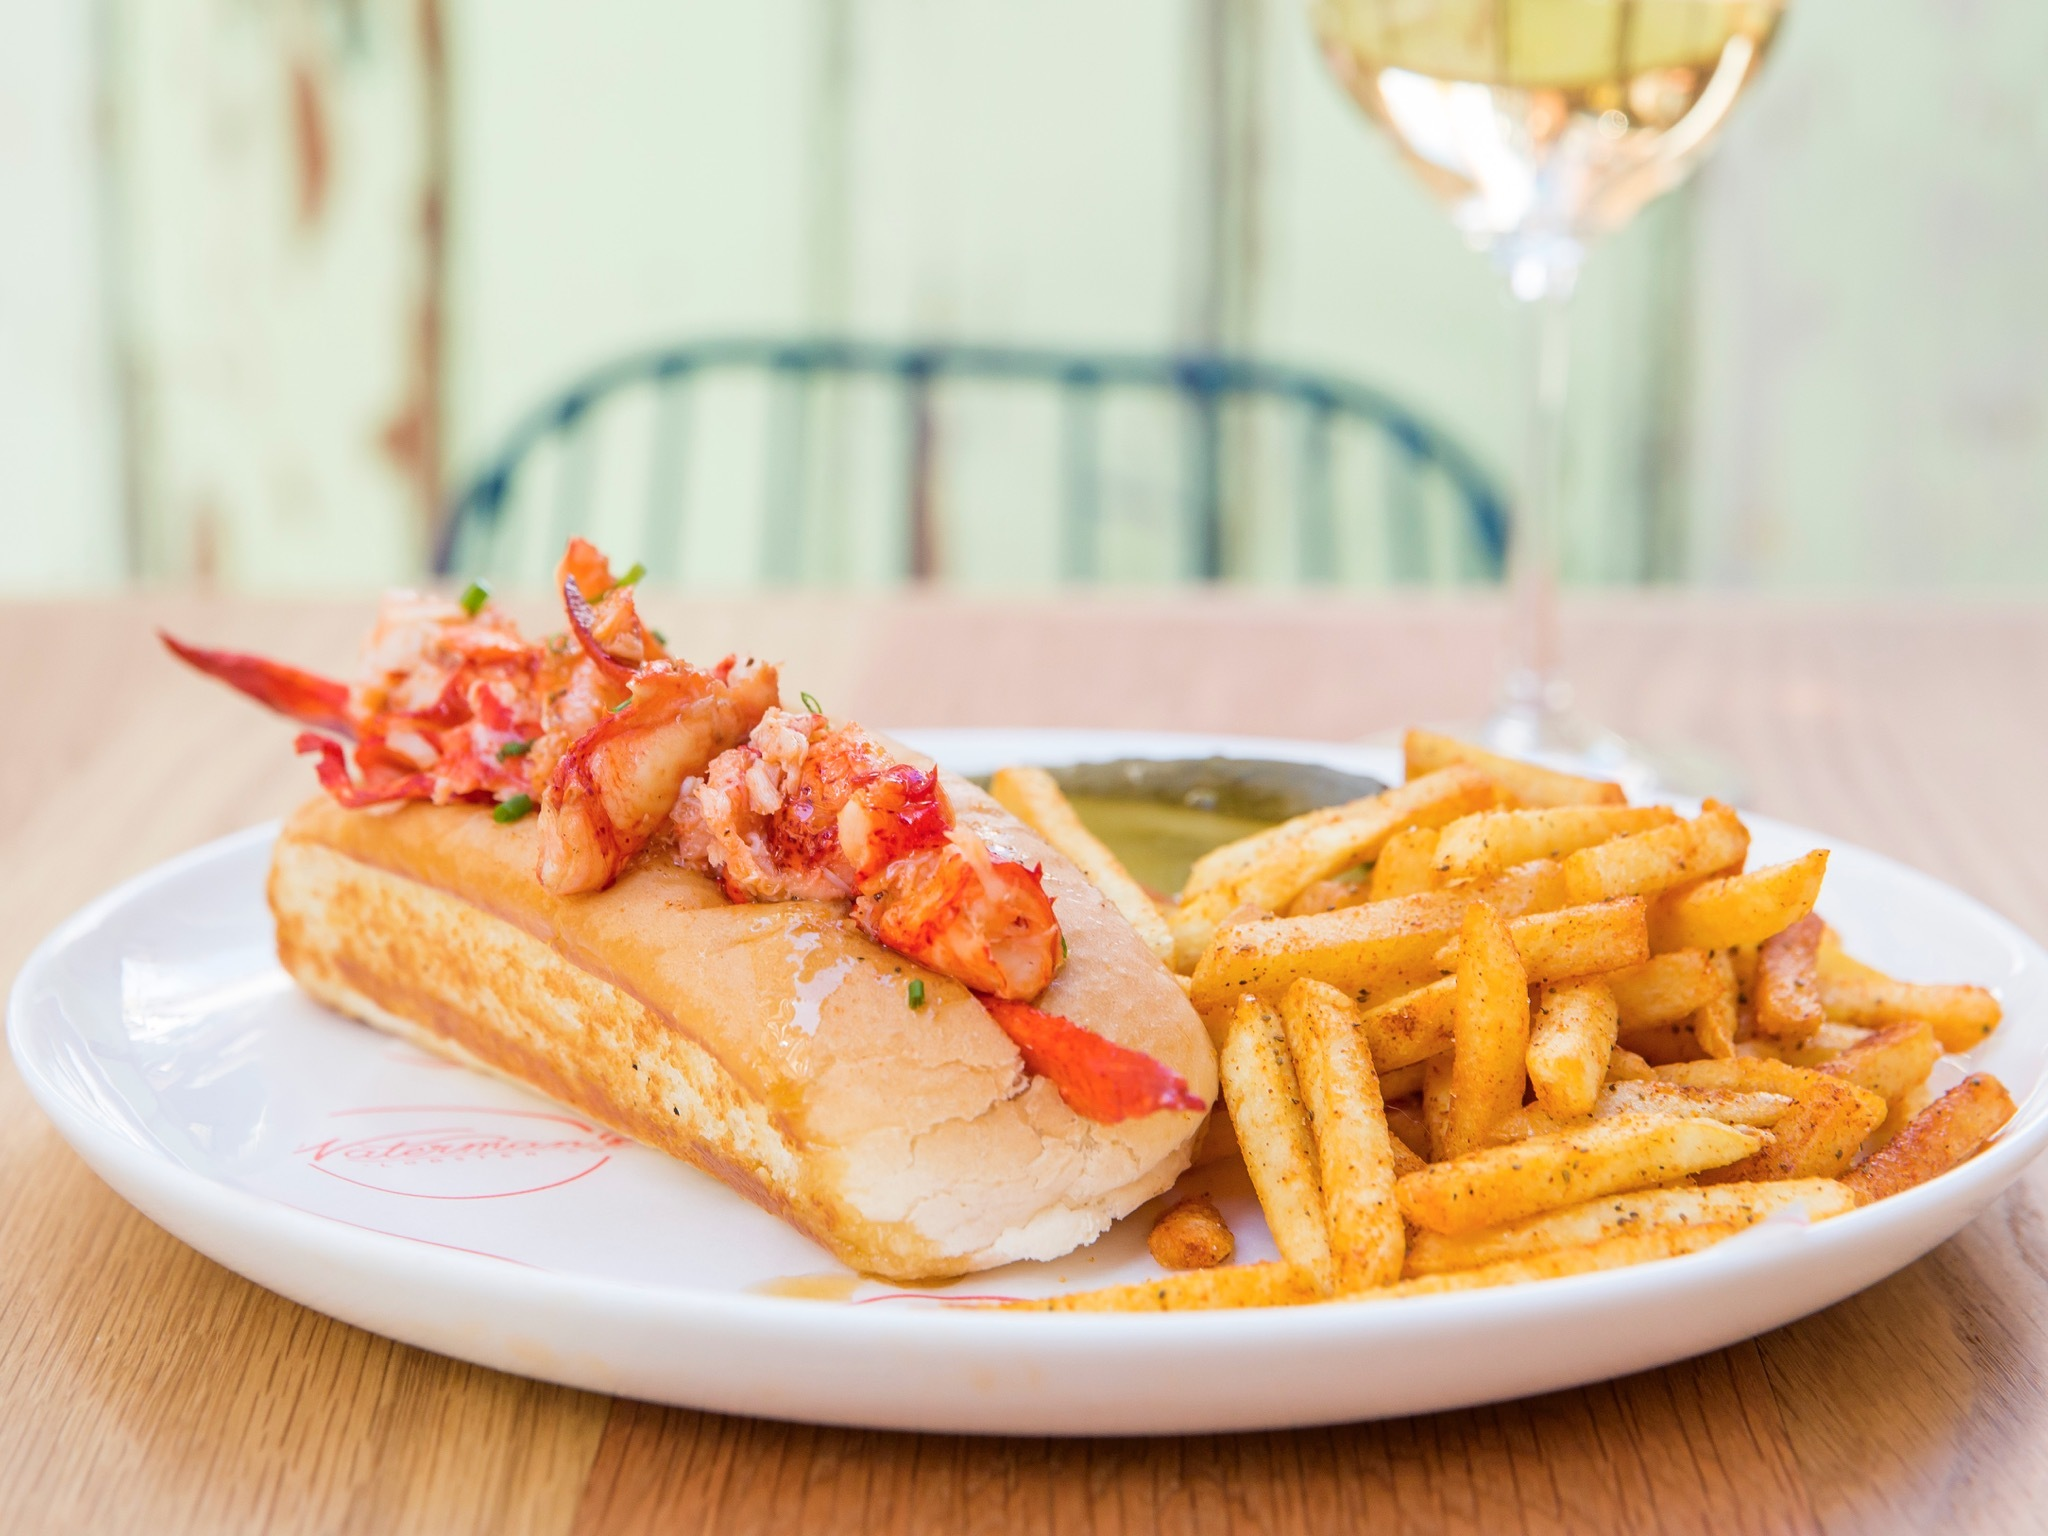 The Connecticut lobster roll from Waterman's Lobster Co